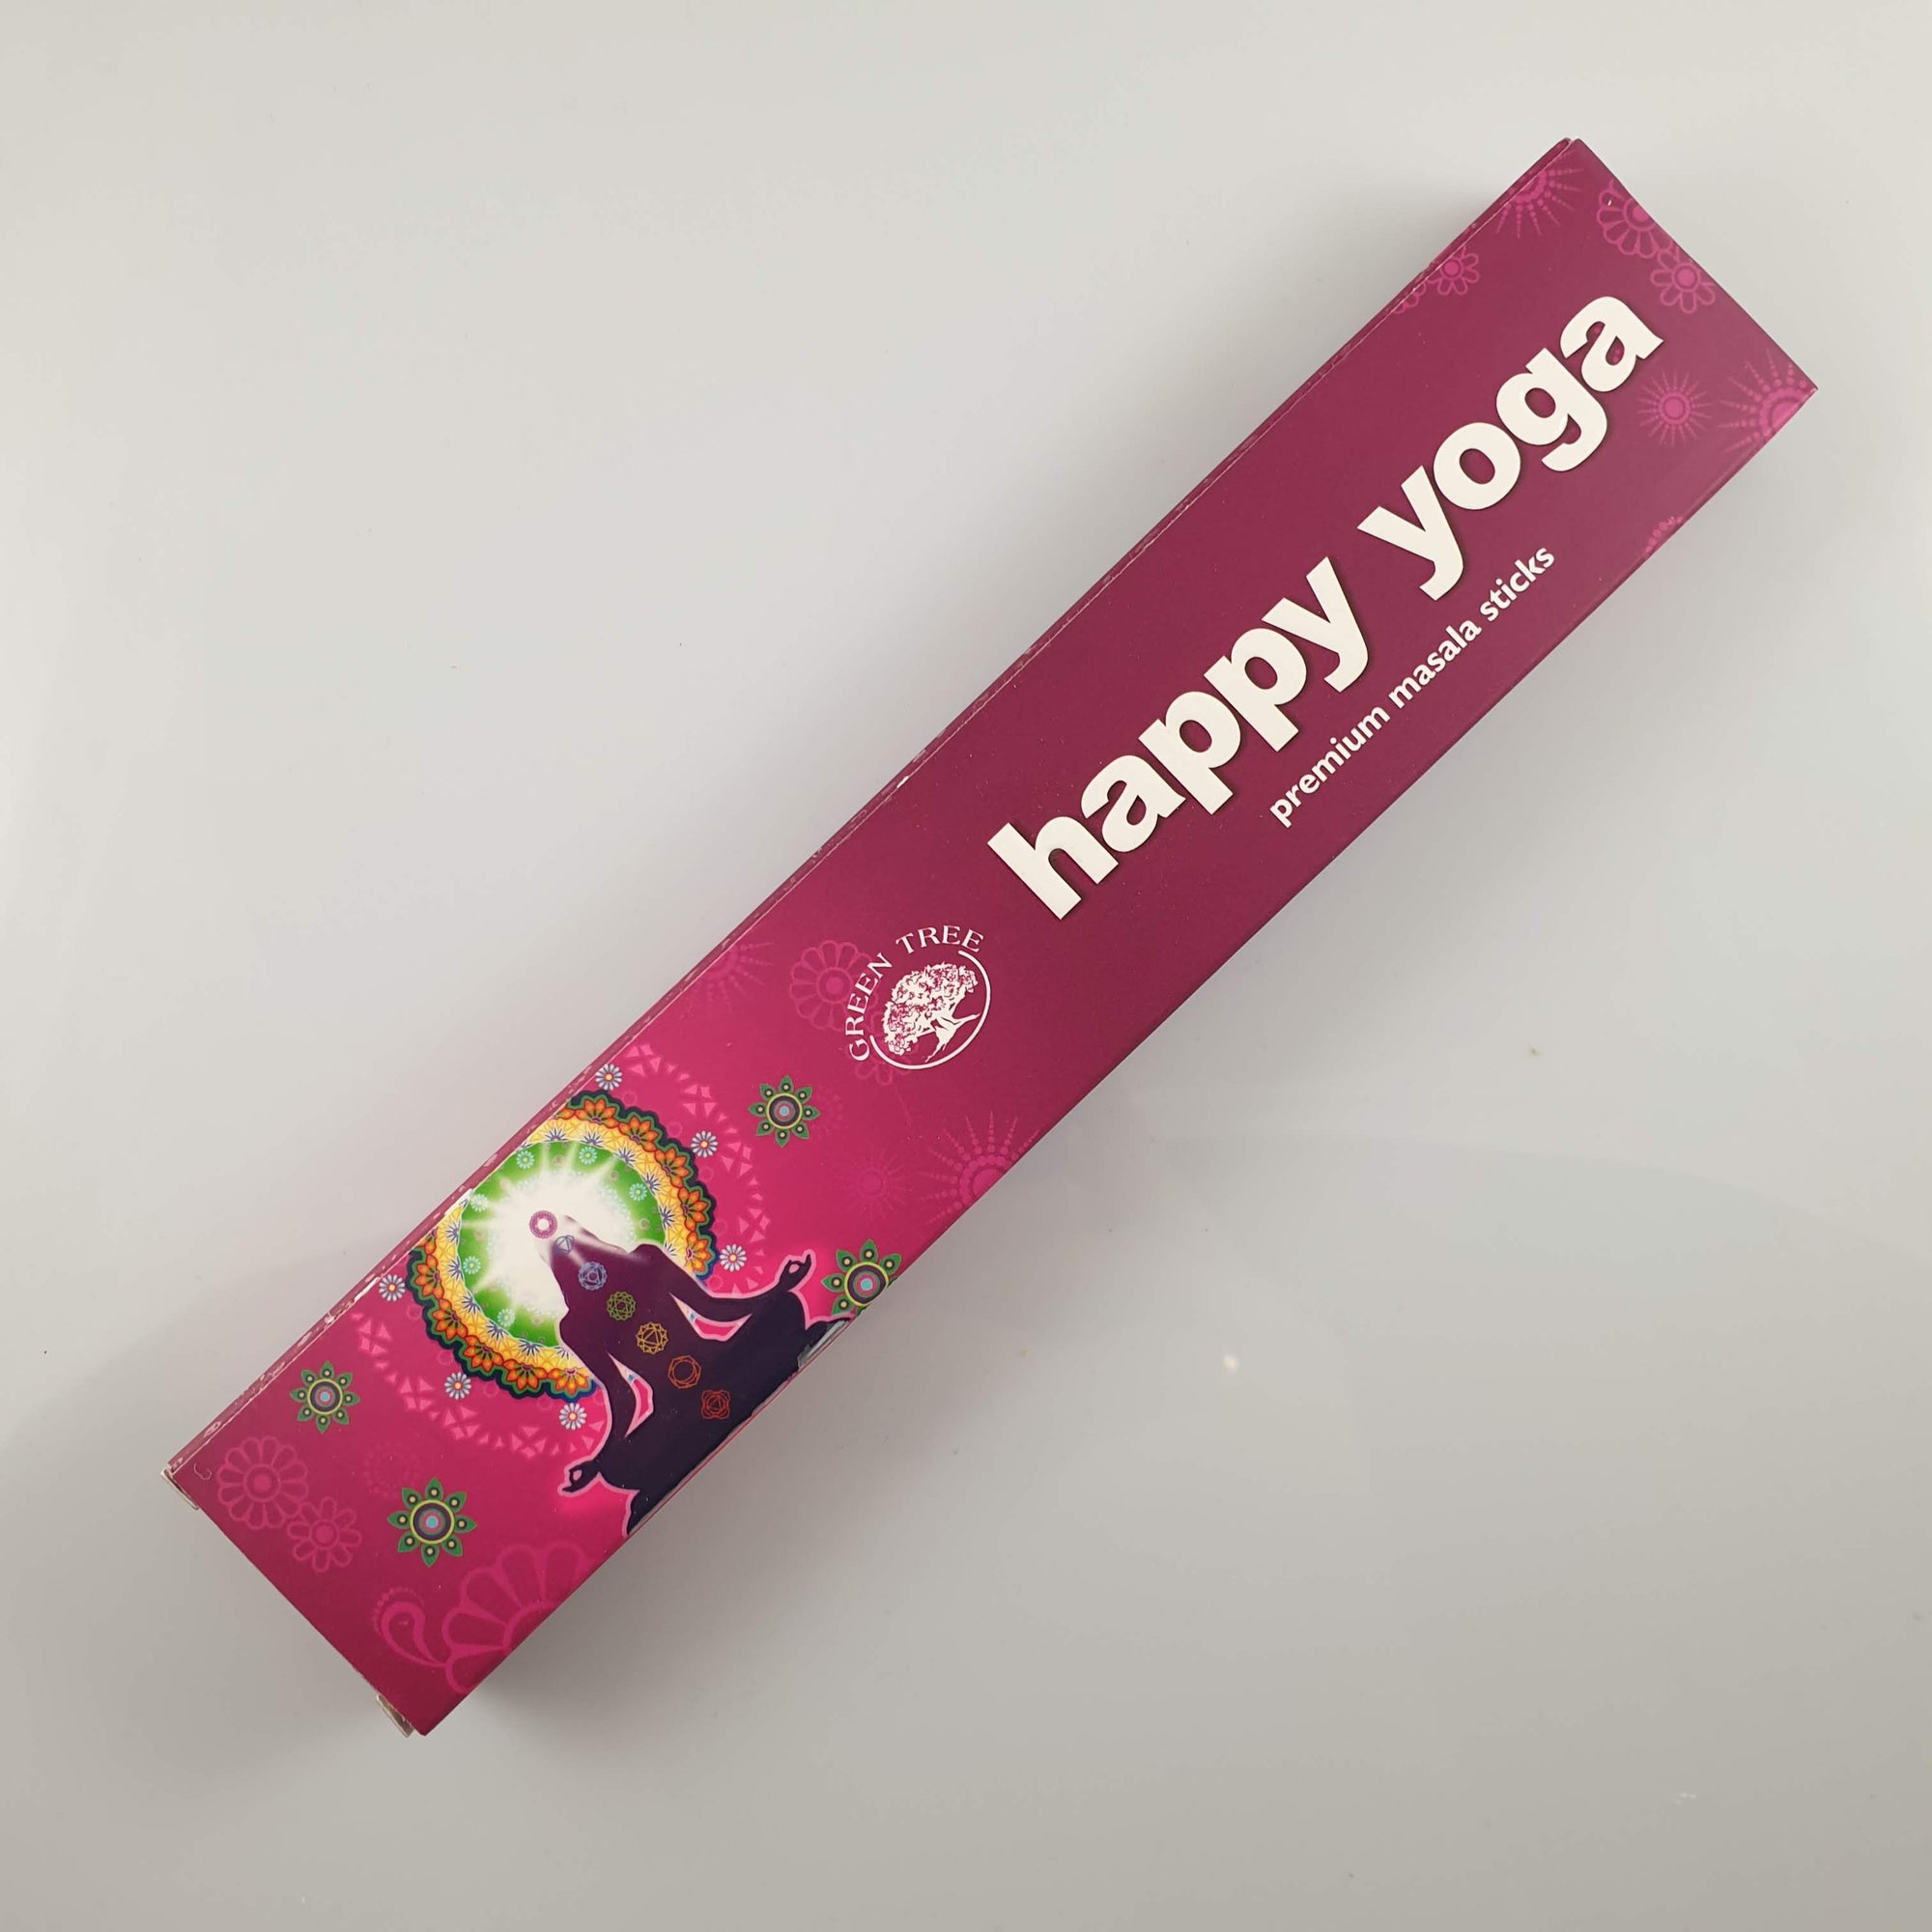 Green Tree Happy Yoga Incense 15gm - Rivendell Shop NZ